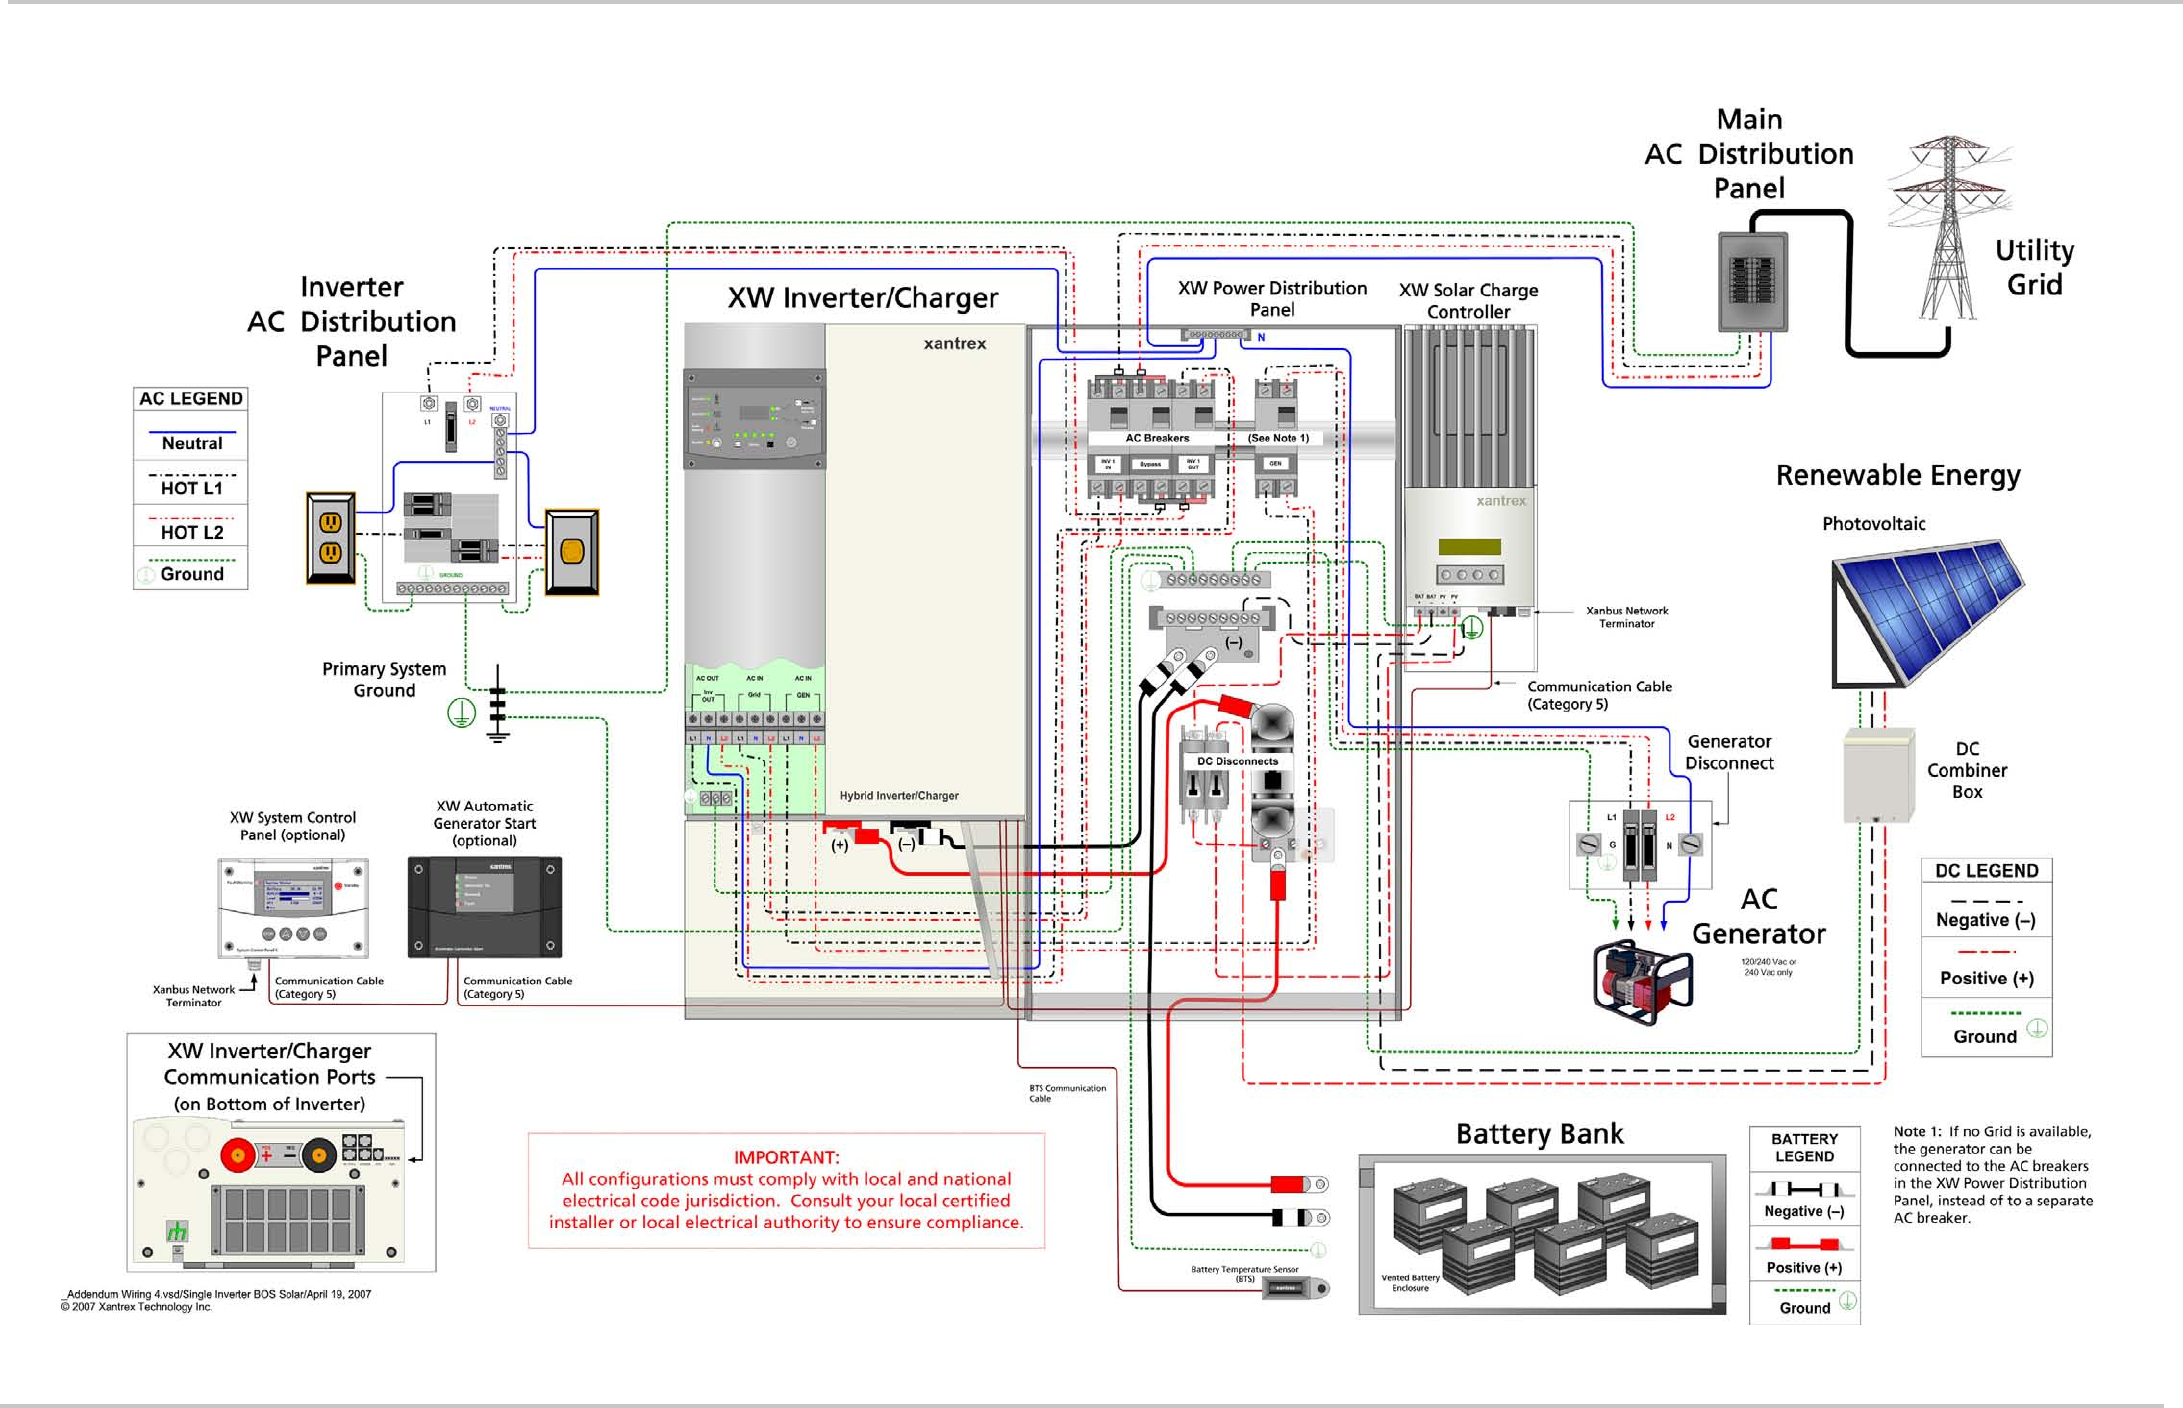 dom inverter charger wiring diagram dom inverter charger dom inverter charger wiring diagram xantrex inverter charger wiring diagram jodebal com